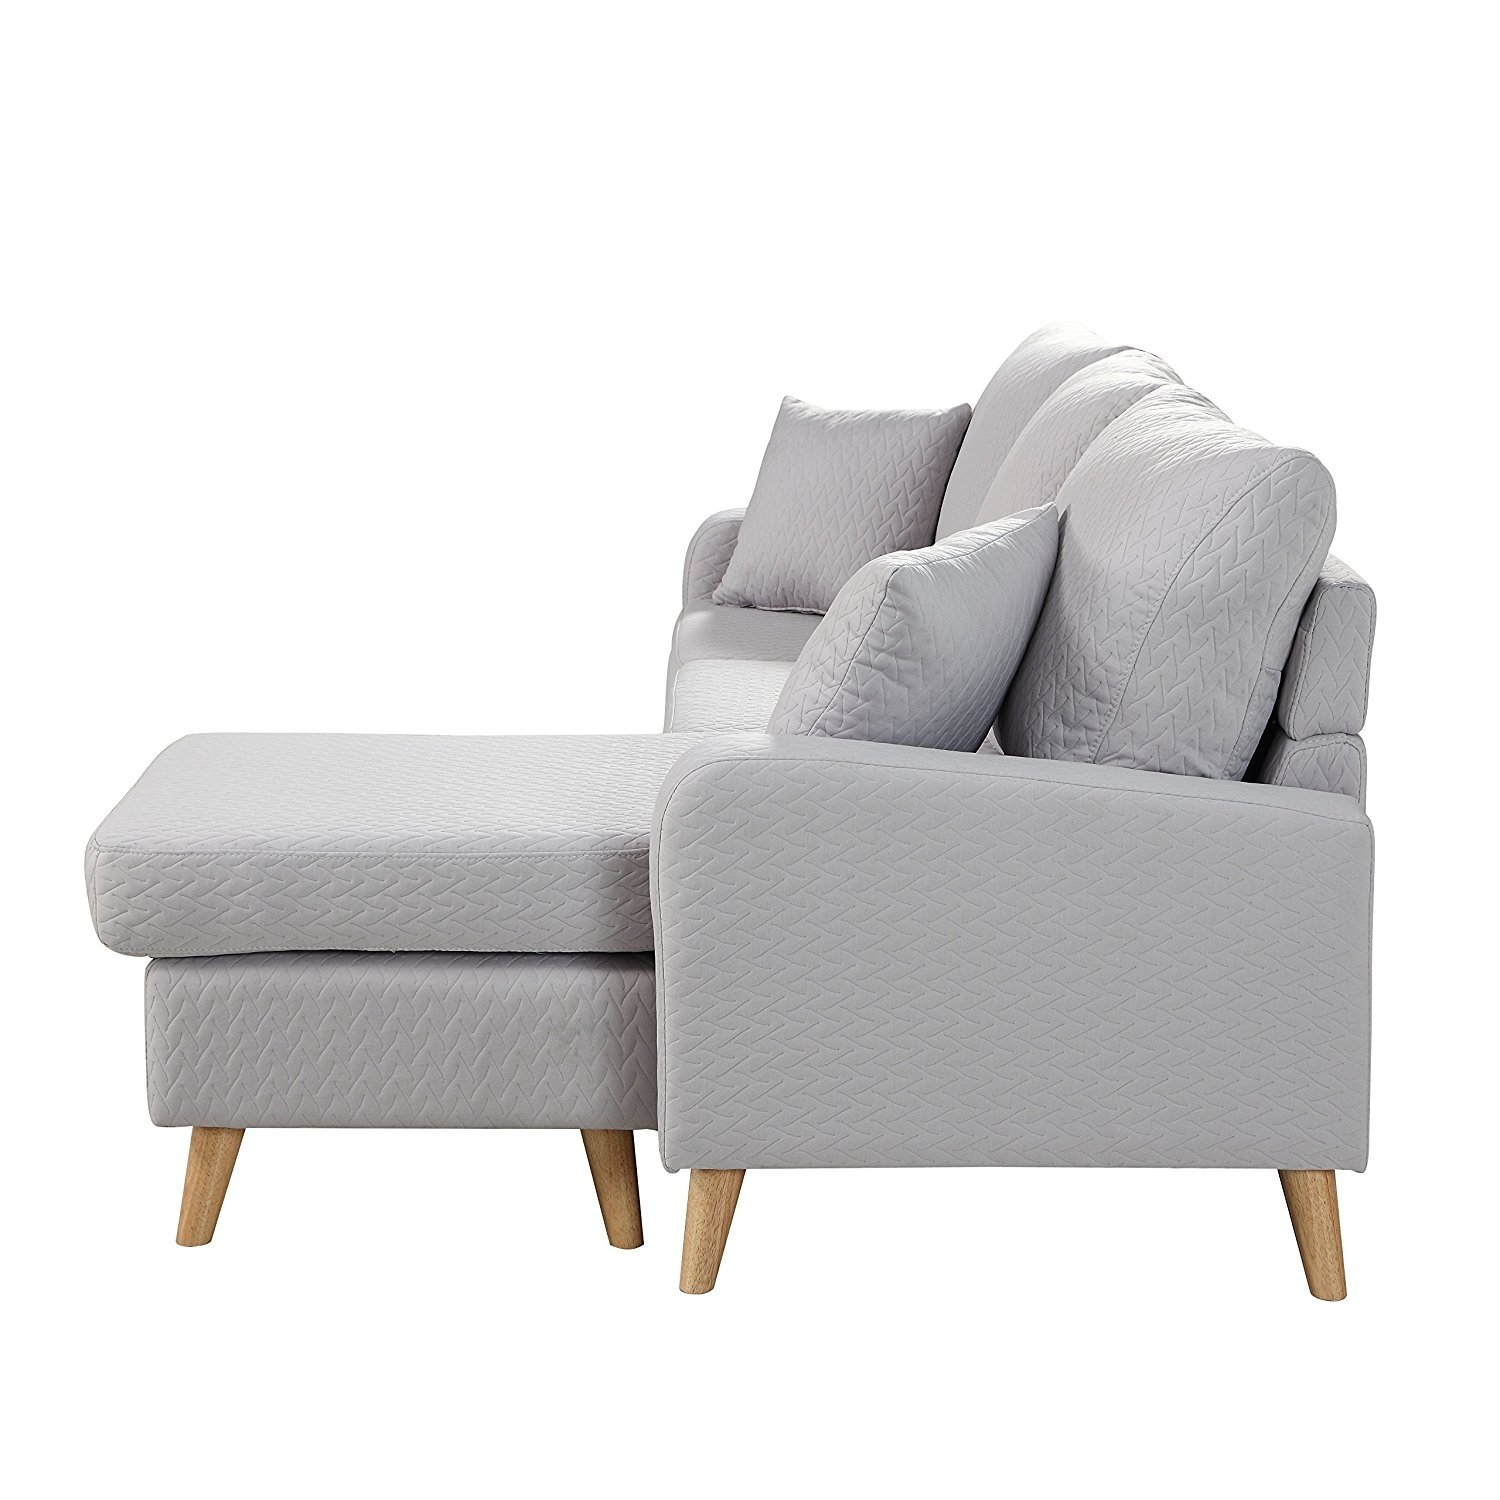 Light Grey Small Space Furniture Sectional Sofa With